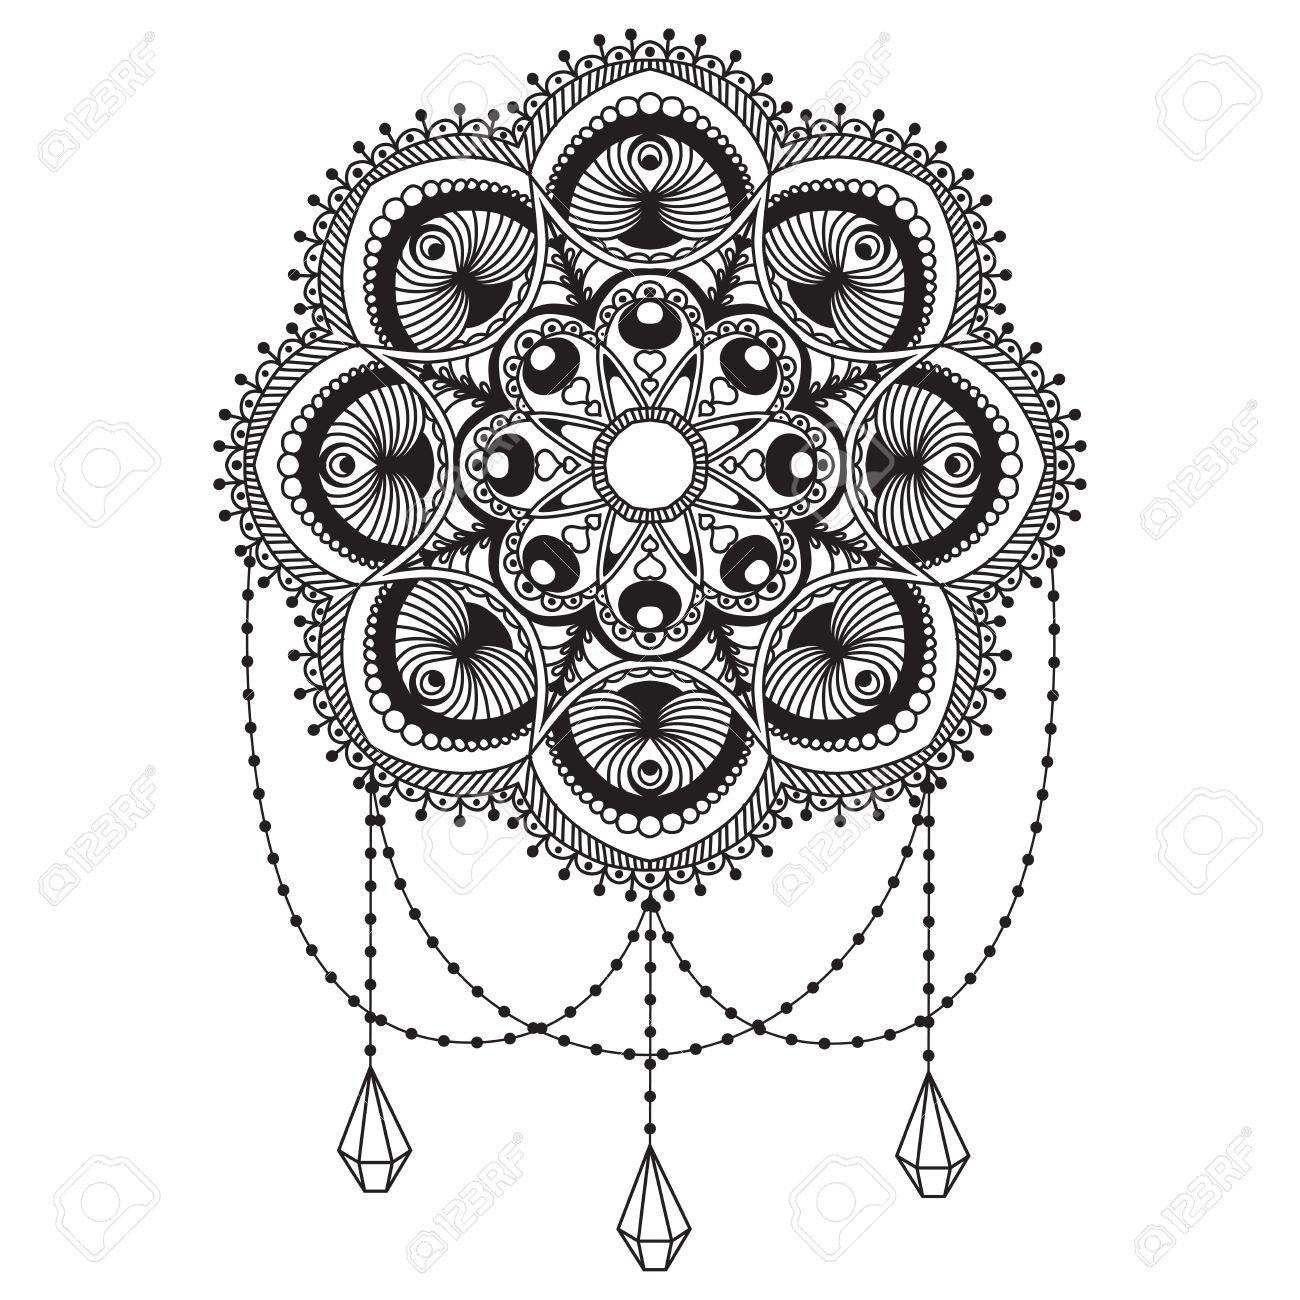 Hand Drawn Native Indian Mandala Decorated With Pendants And